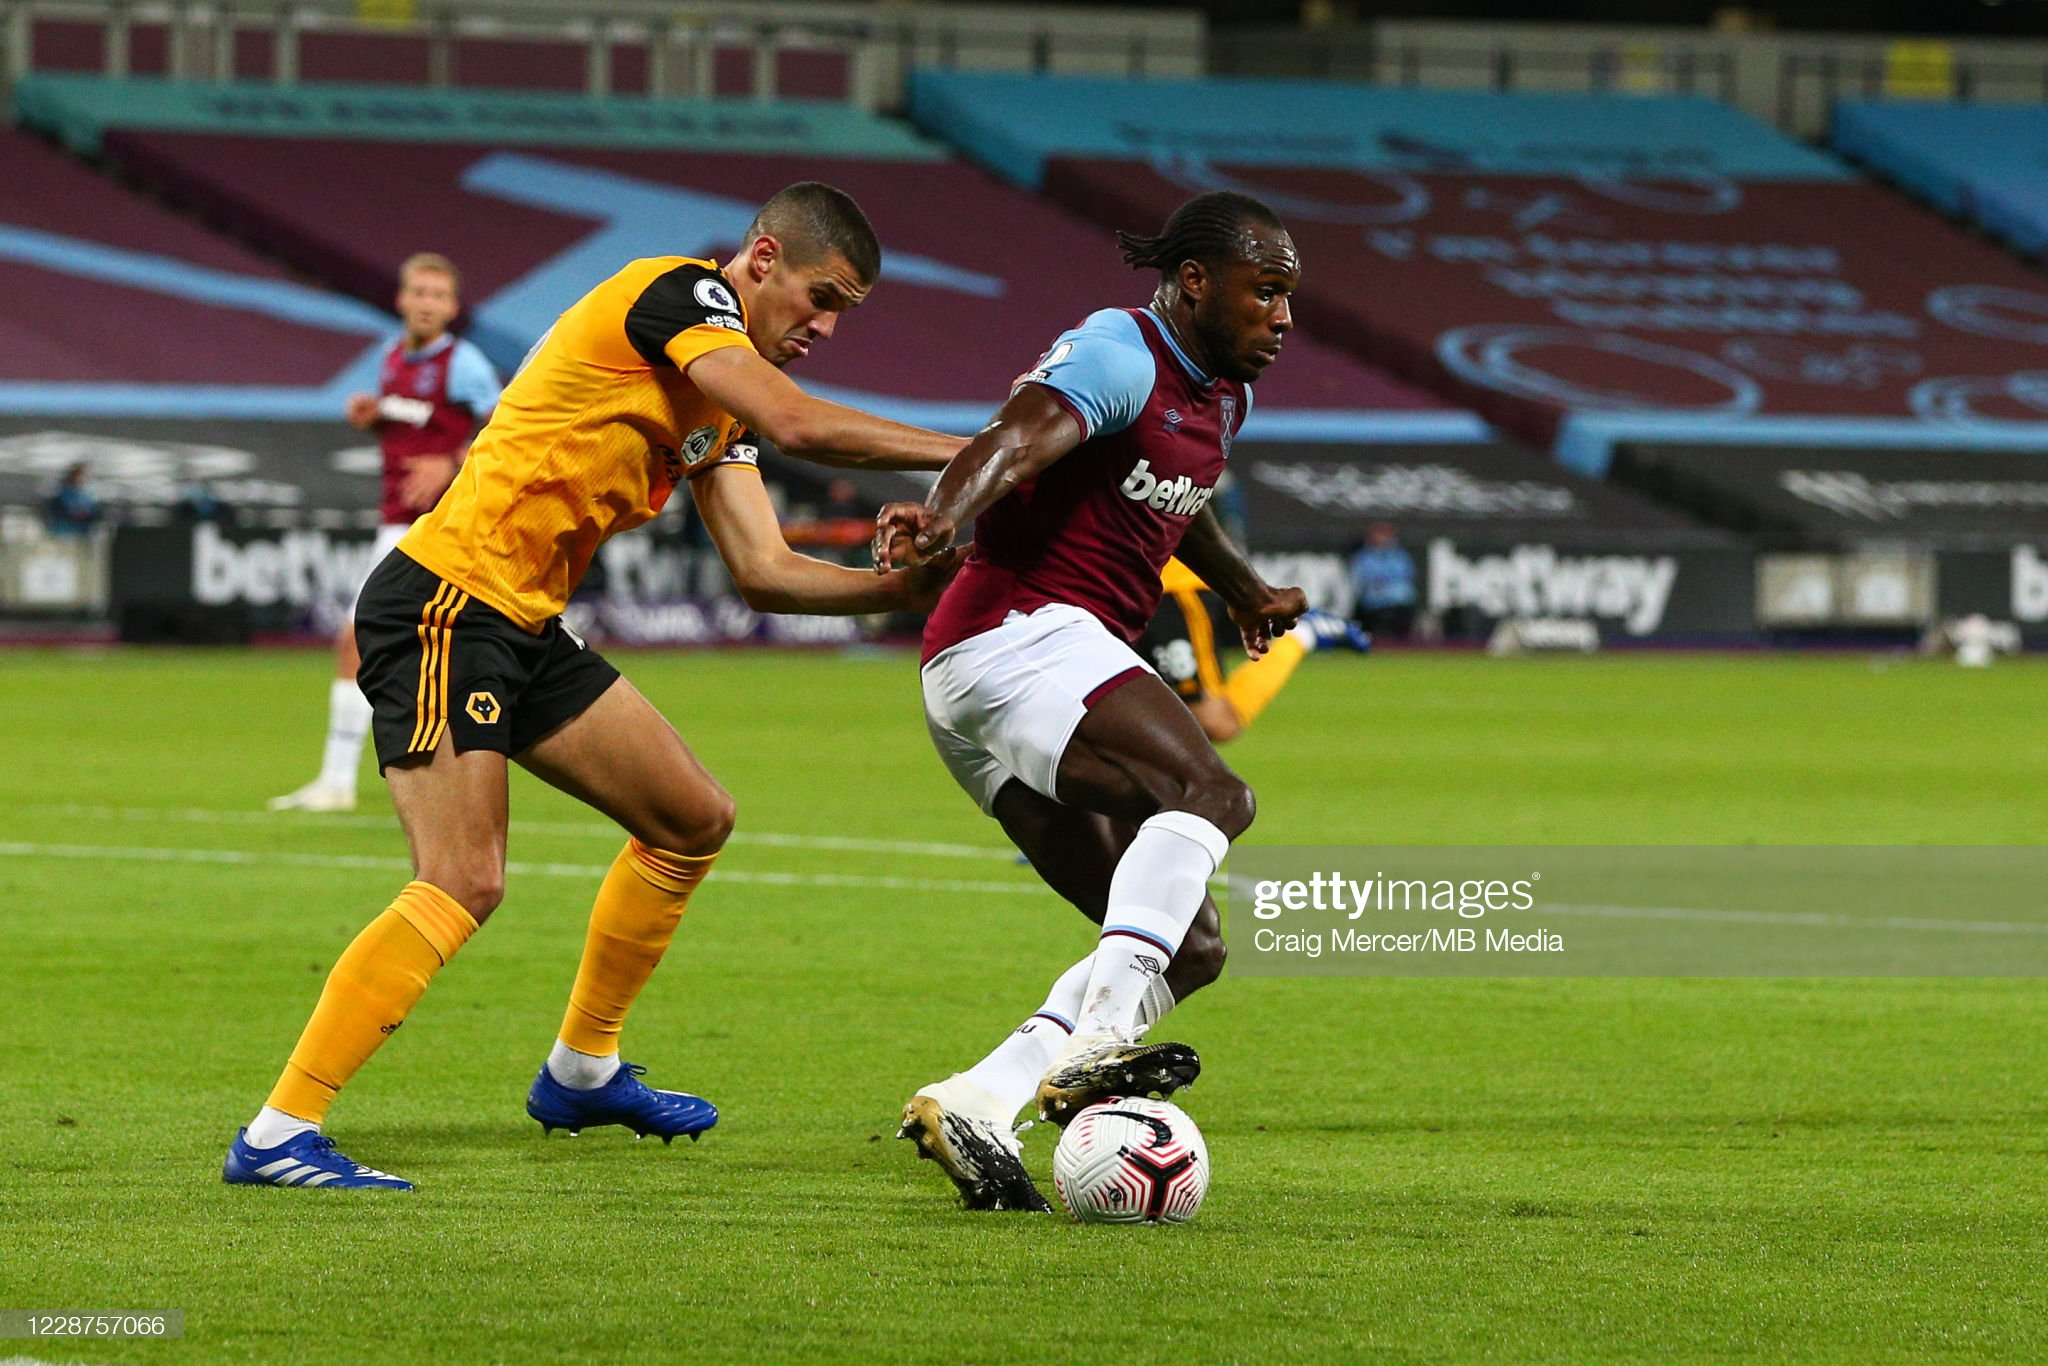 Wolves vs West Ham preview, prediction and odds